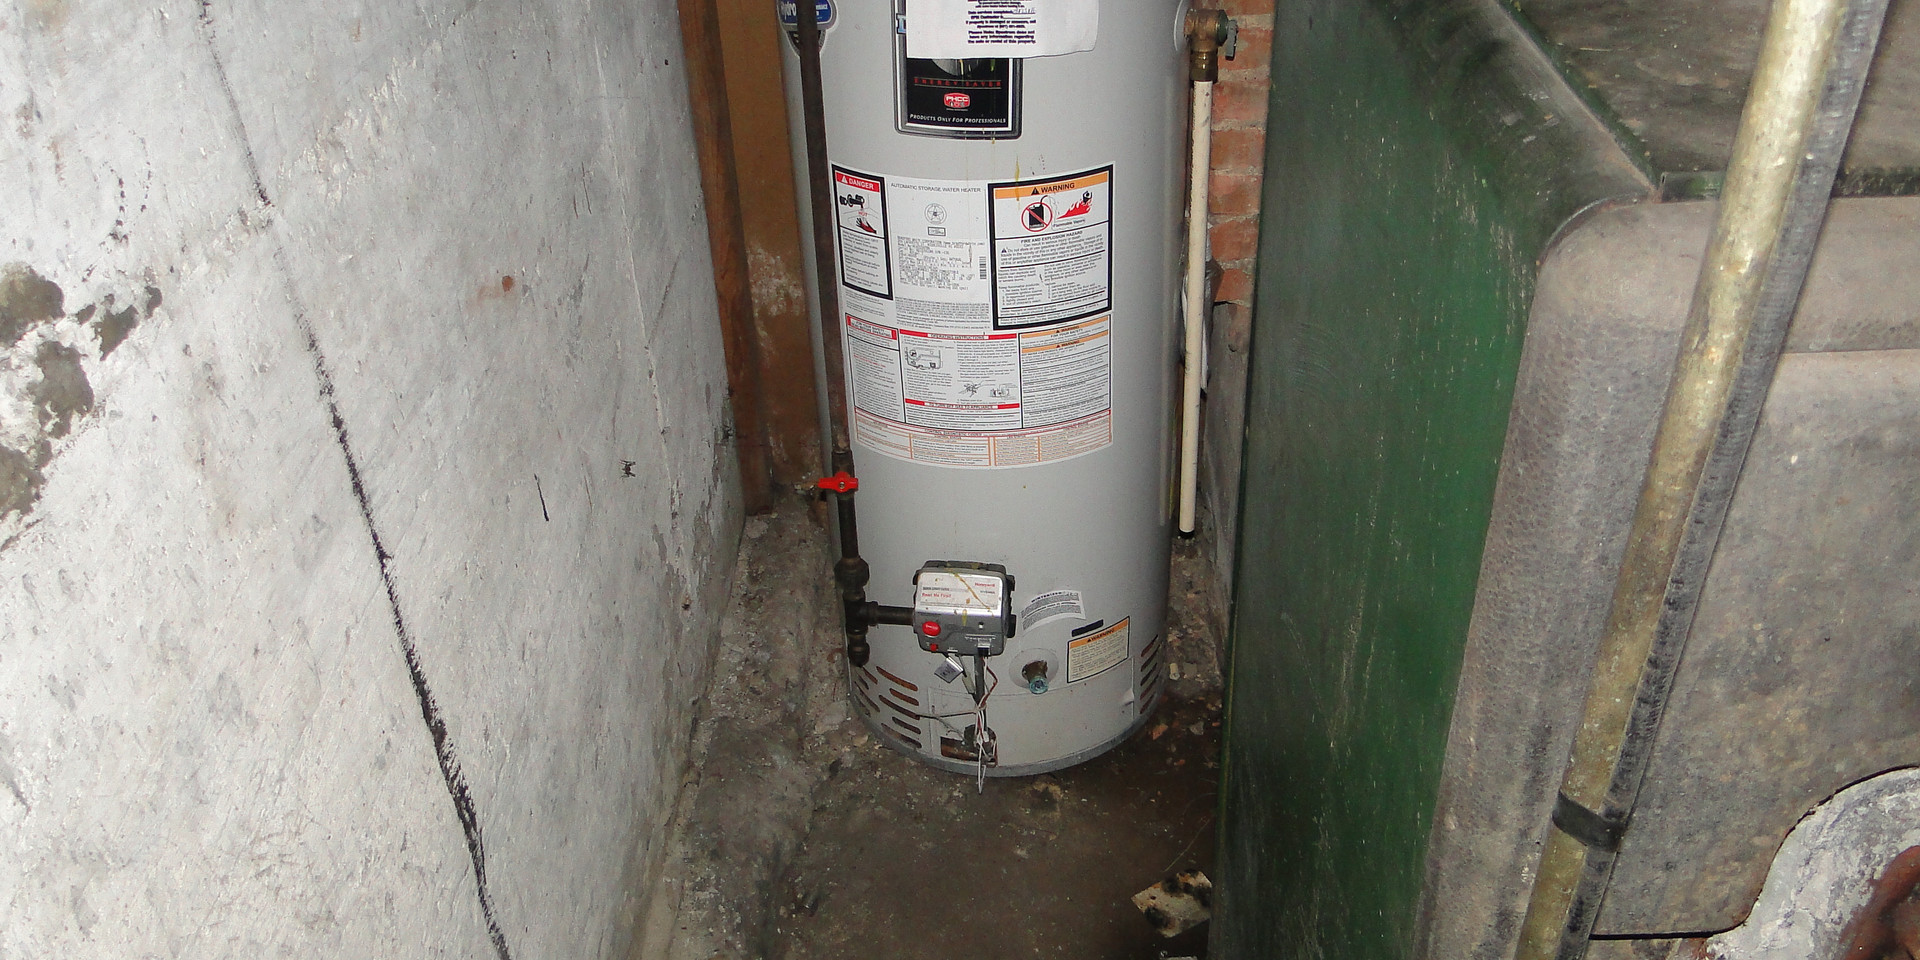 17 - Hot Water Heater.JPG